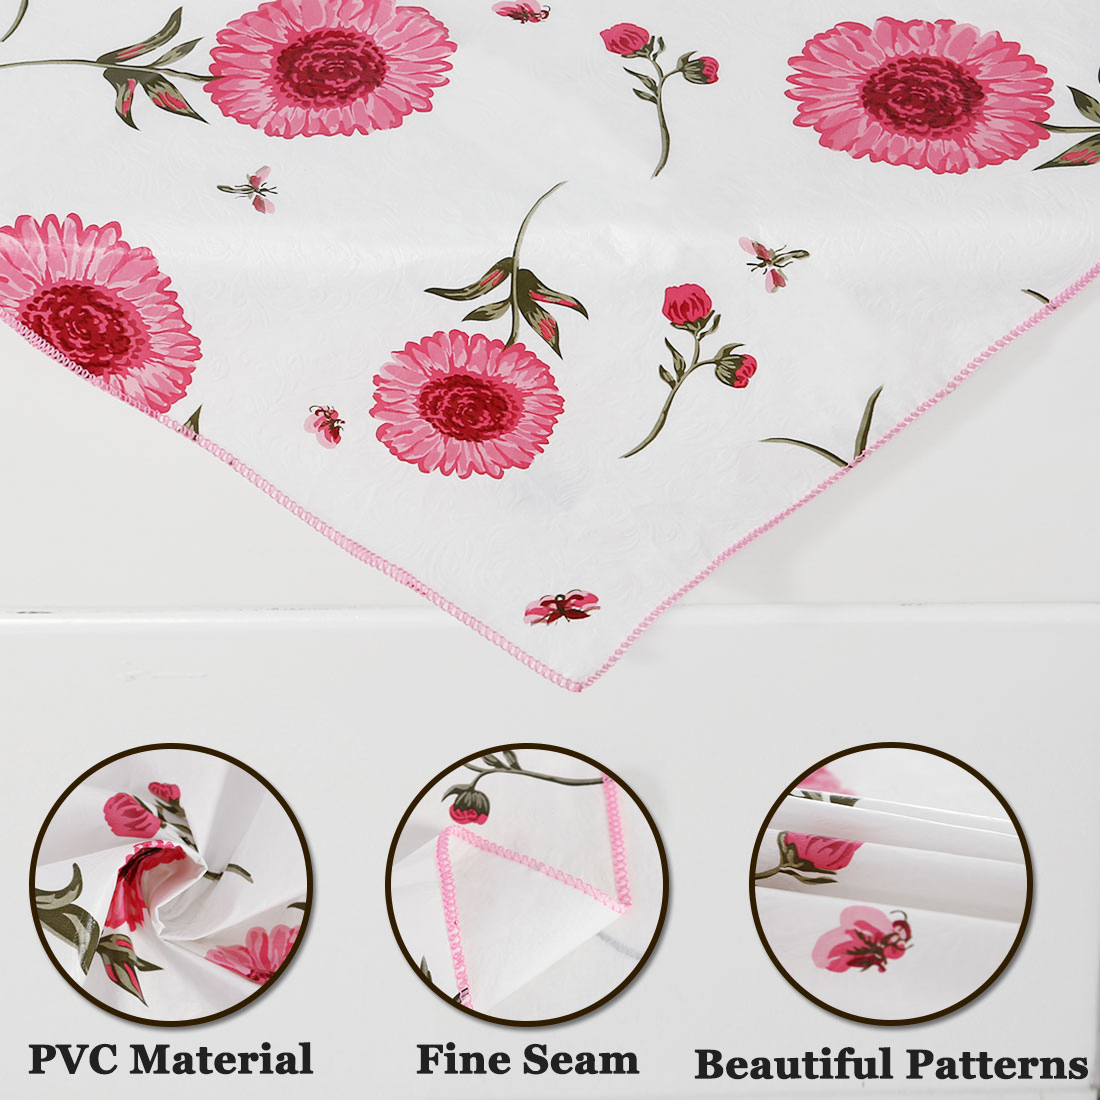 Vinyl Plastic Home Picnic Square Tablecloth Table Cloth Cover Water/Oil Stain Resistant Pink 35 x 35 Inch Sunflower Patt - image 5 of 8